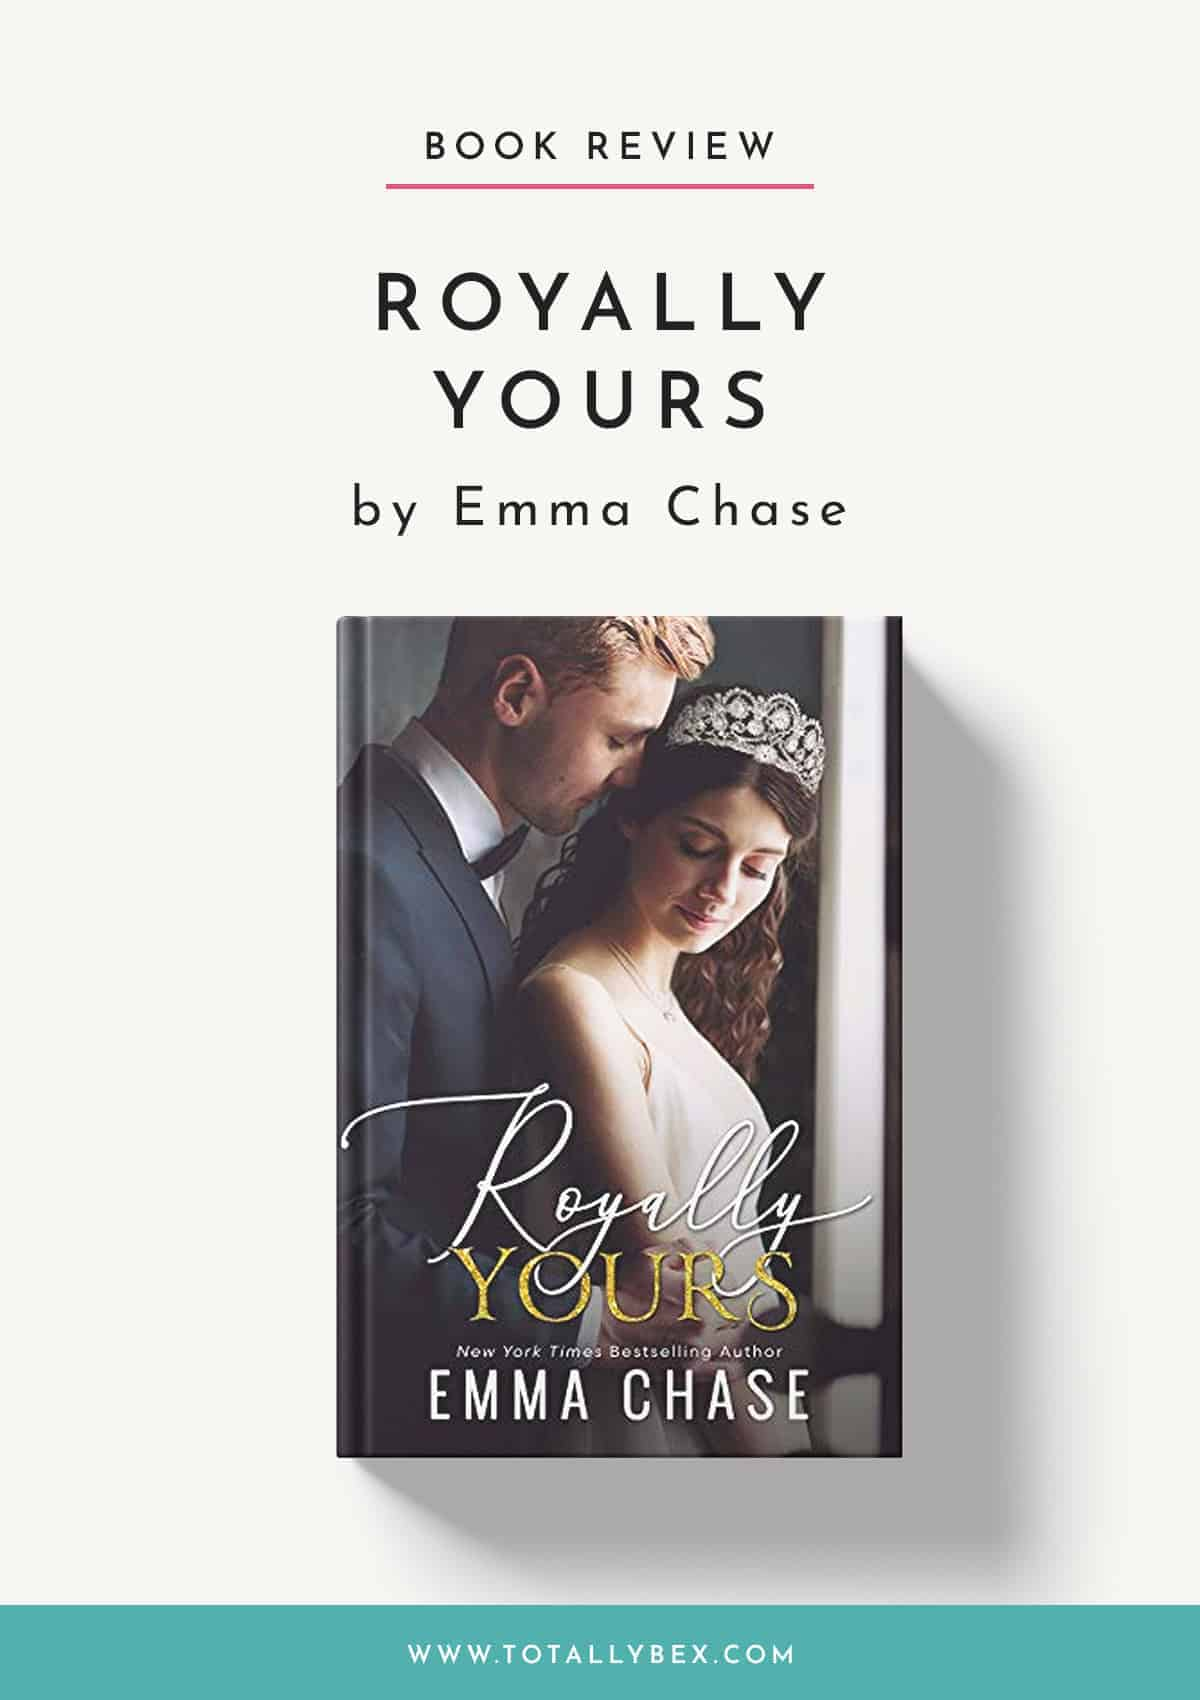 Royally Yours by Emma Chase-Book Review